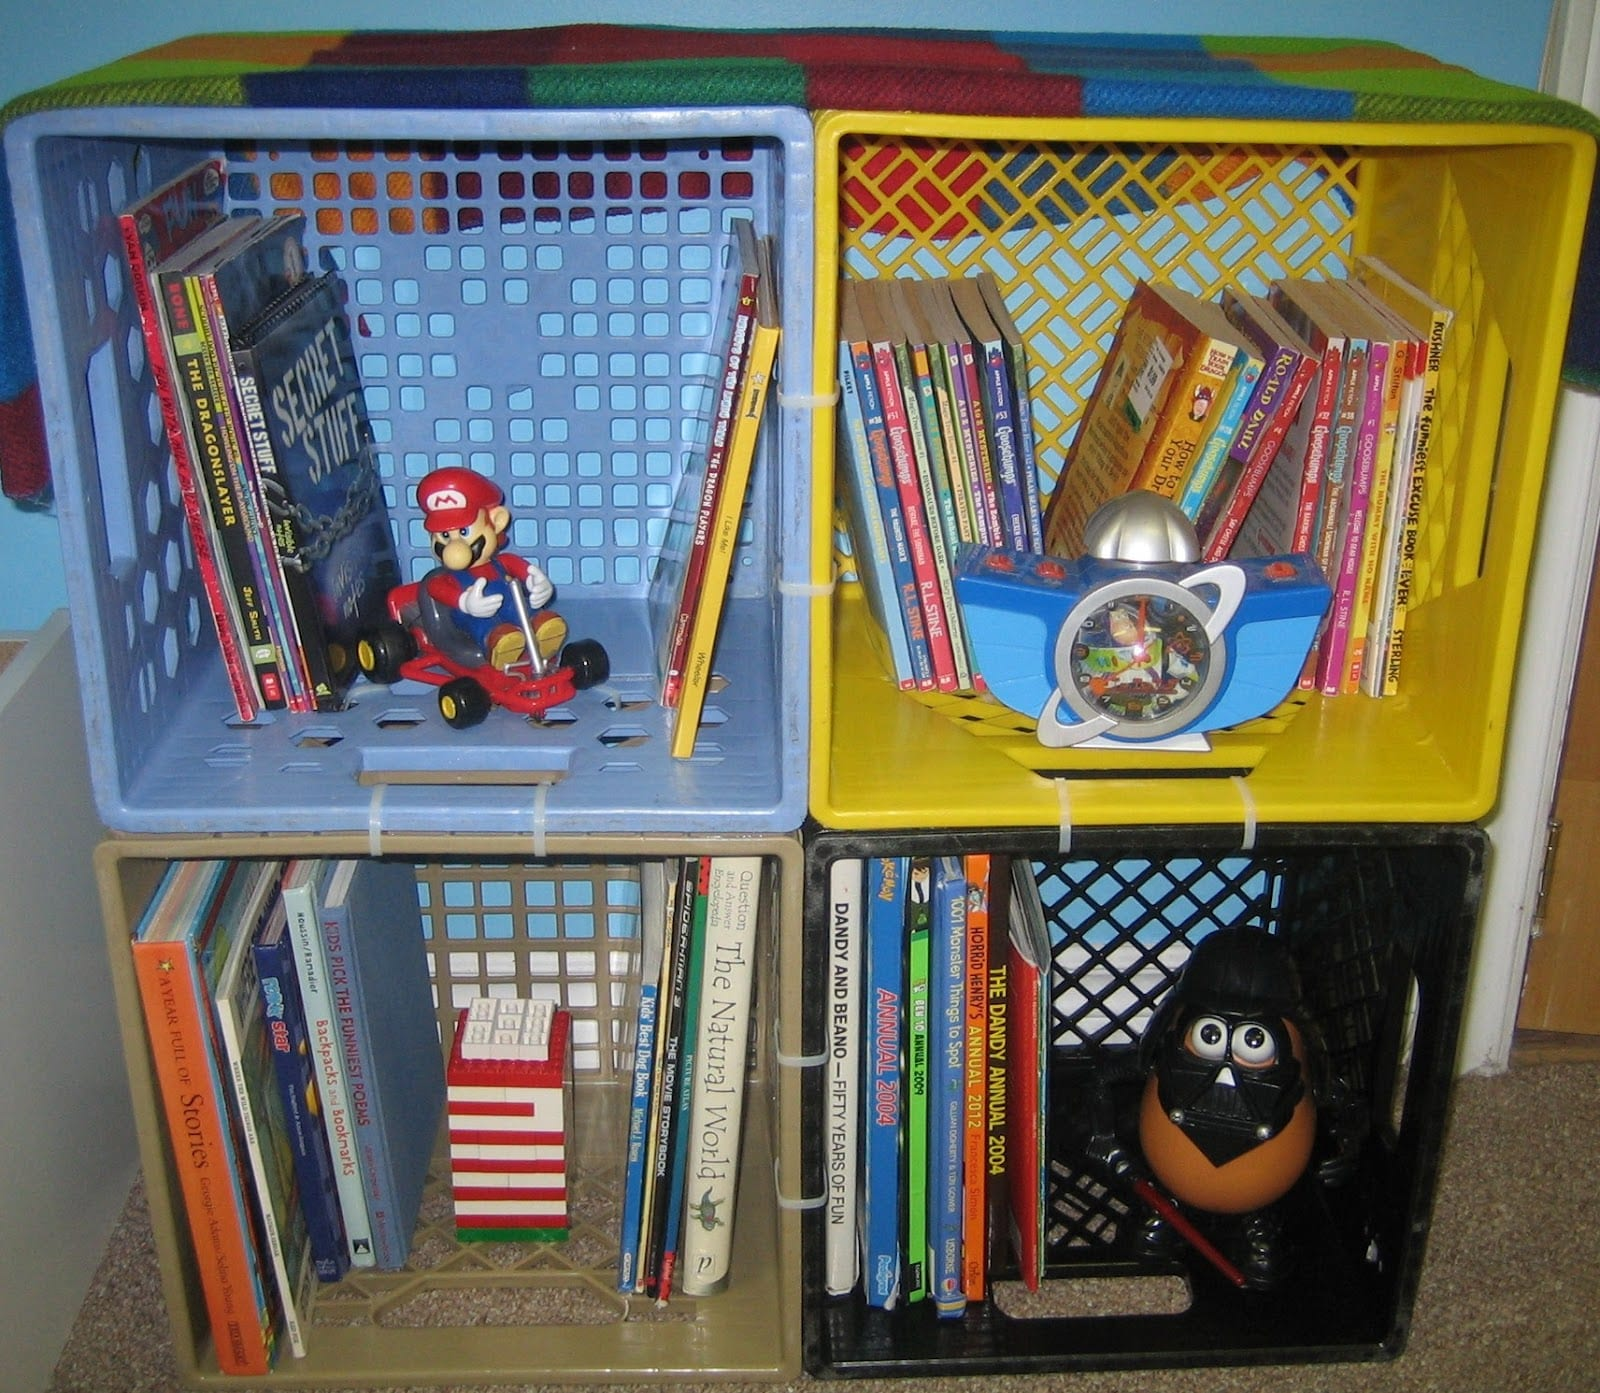 Home use of Milk Crates